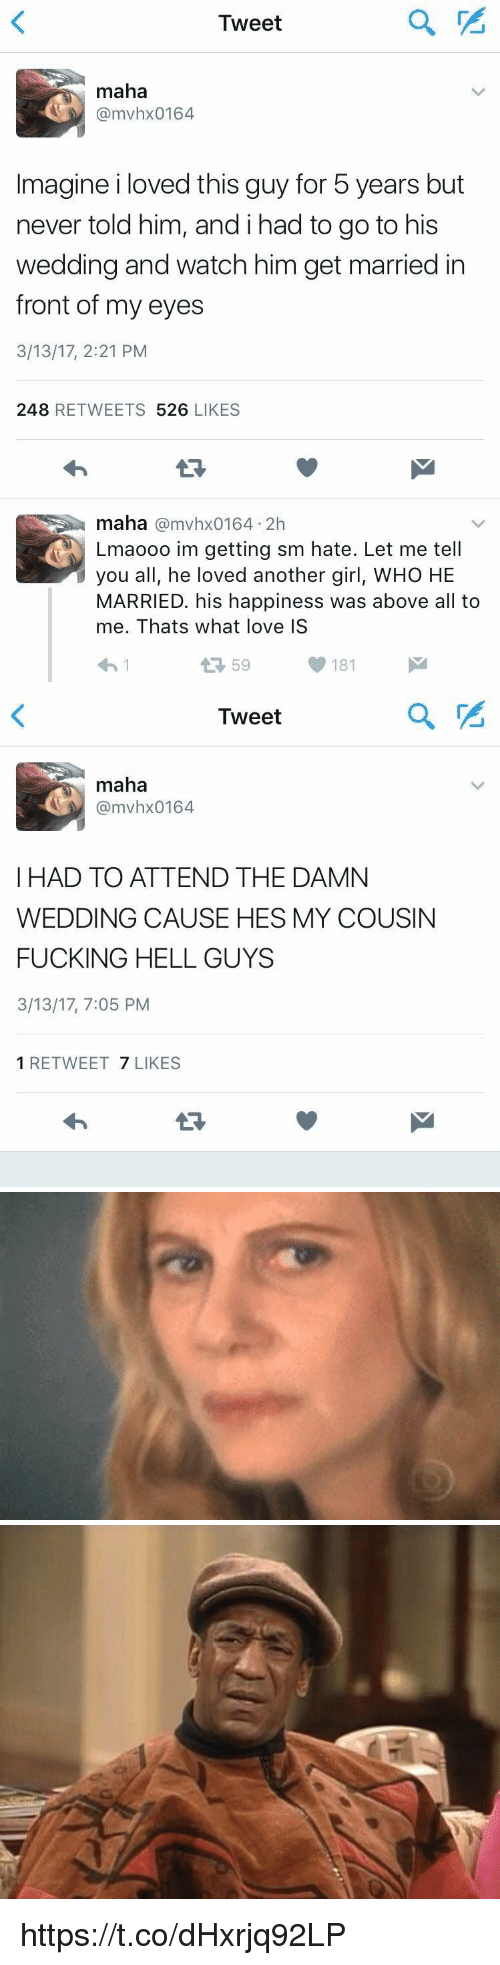 Fucking, Girls, and Love: Tweet  maha  @mvhx0164  Imagine i loved this guy for 5 years but  never told him, andihad to go to his  wedding and watch him get married in  front of my eyes  3/13/17, 2:21 PM  248 RETWEETS 526 LIKES  maha @mvhx0164 2h  Lmaooo im getting sm hate. Let me tell  you all, he loved another girl, WHO HE  MARRIED. his happiness was above all to  me. Thats what love IS  わ!  59  181   Tweet  maha  @mvhx0164  I HAD TO ATTEND THE DAMN  WEDDING CAUSE HES MY COUSIN  FUCKING HELL GUYS  3/13/17, 7:05 PM  1 RETWEET 7 LIKES https://t.co/dHxrjq92LP